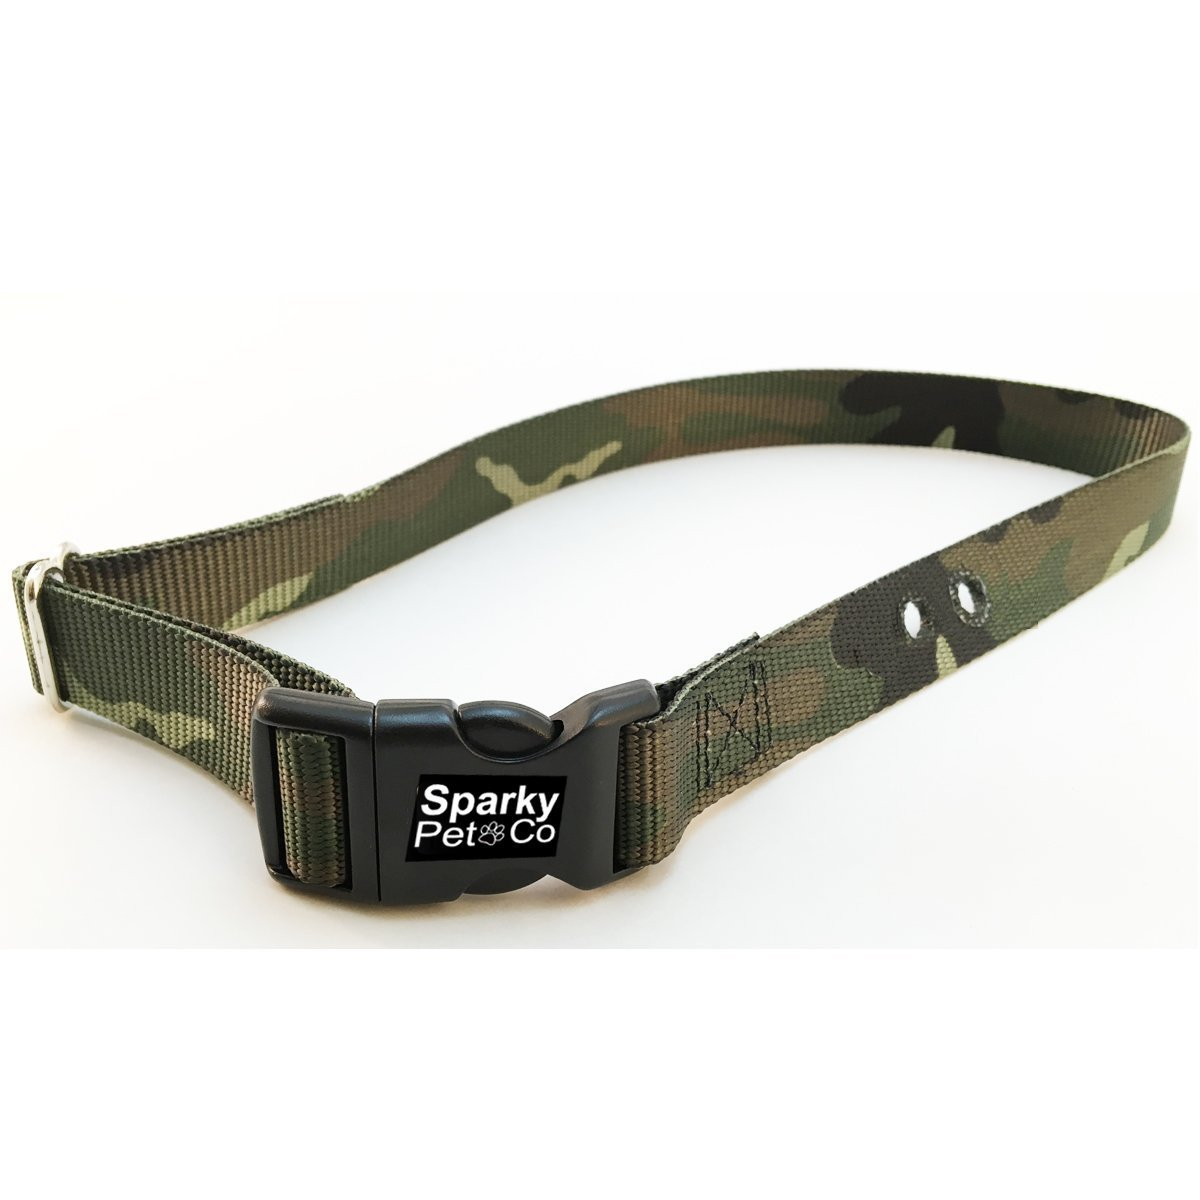 "Sparky PetCo Large Camo Green Heavy Duty 1"" Nylon Replacement Strap 2 Holes 1.25"